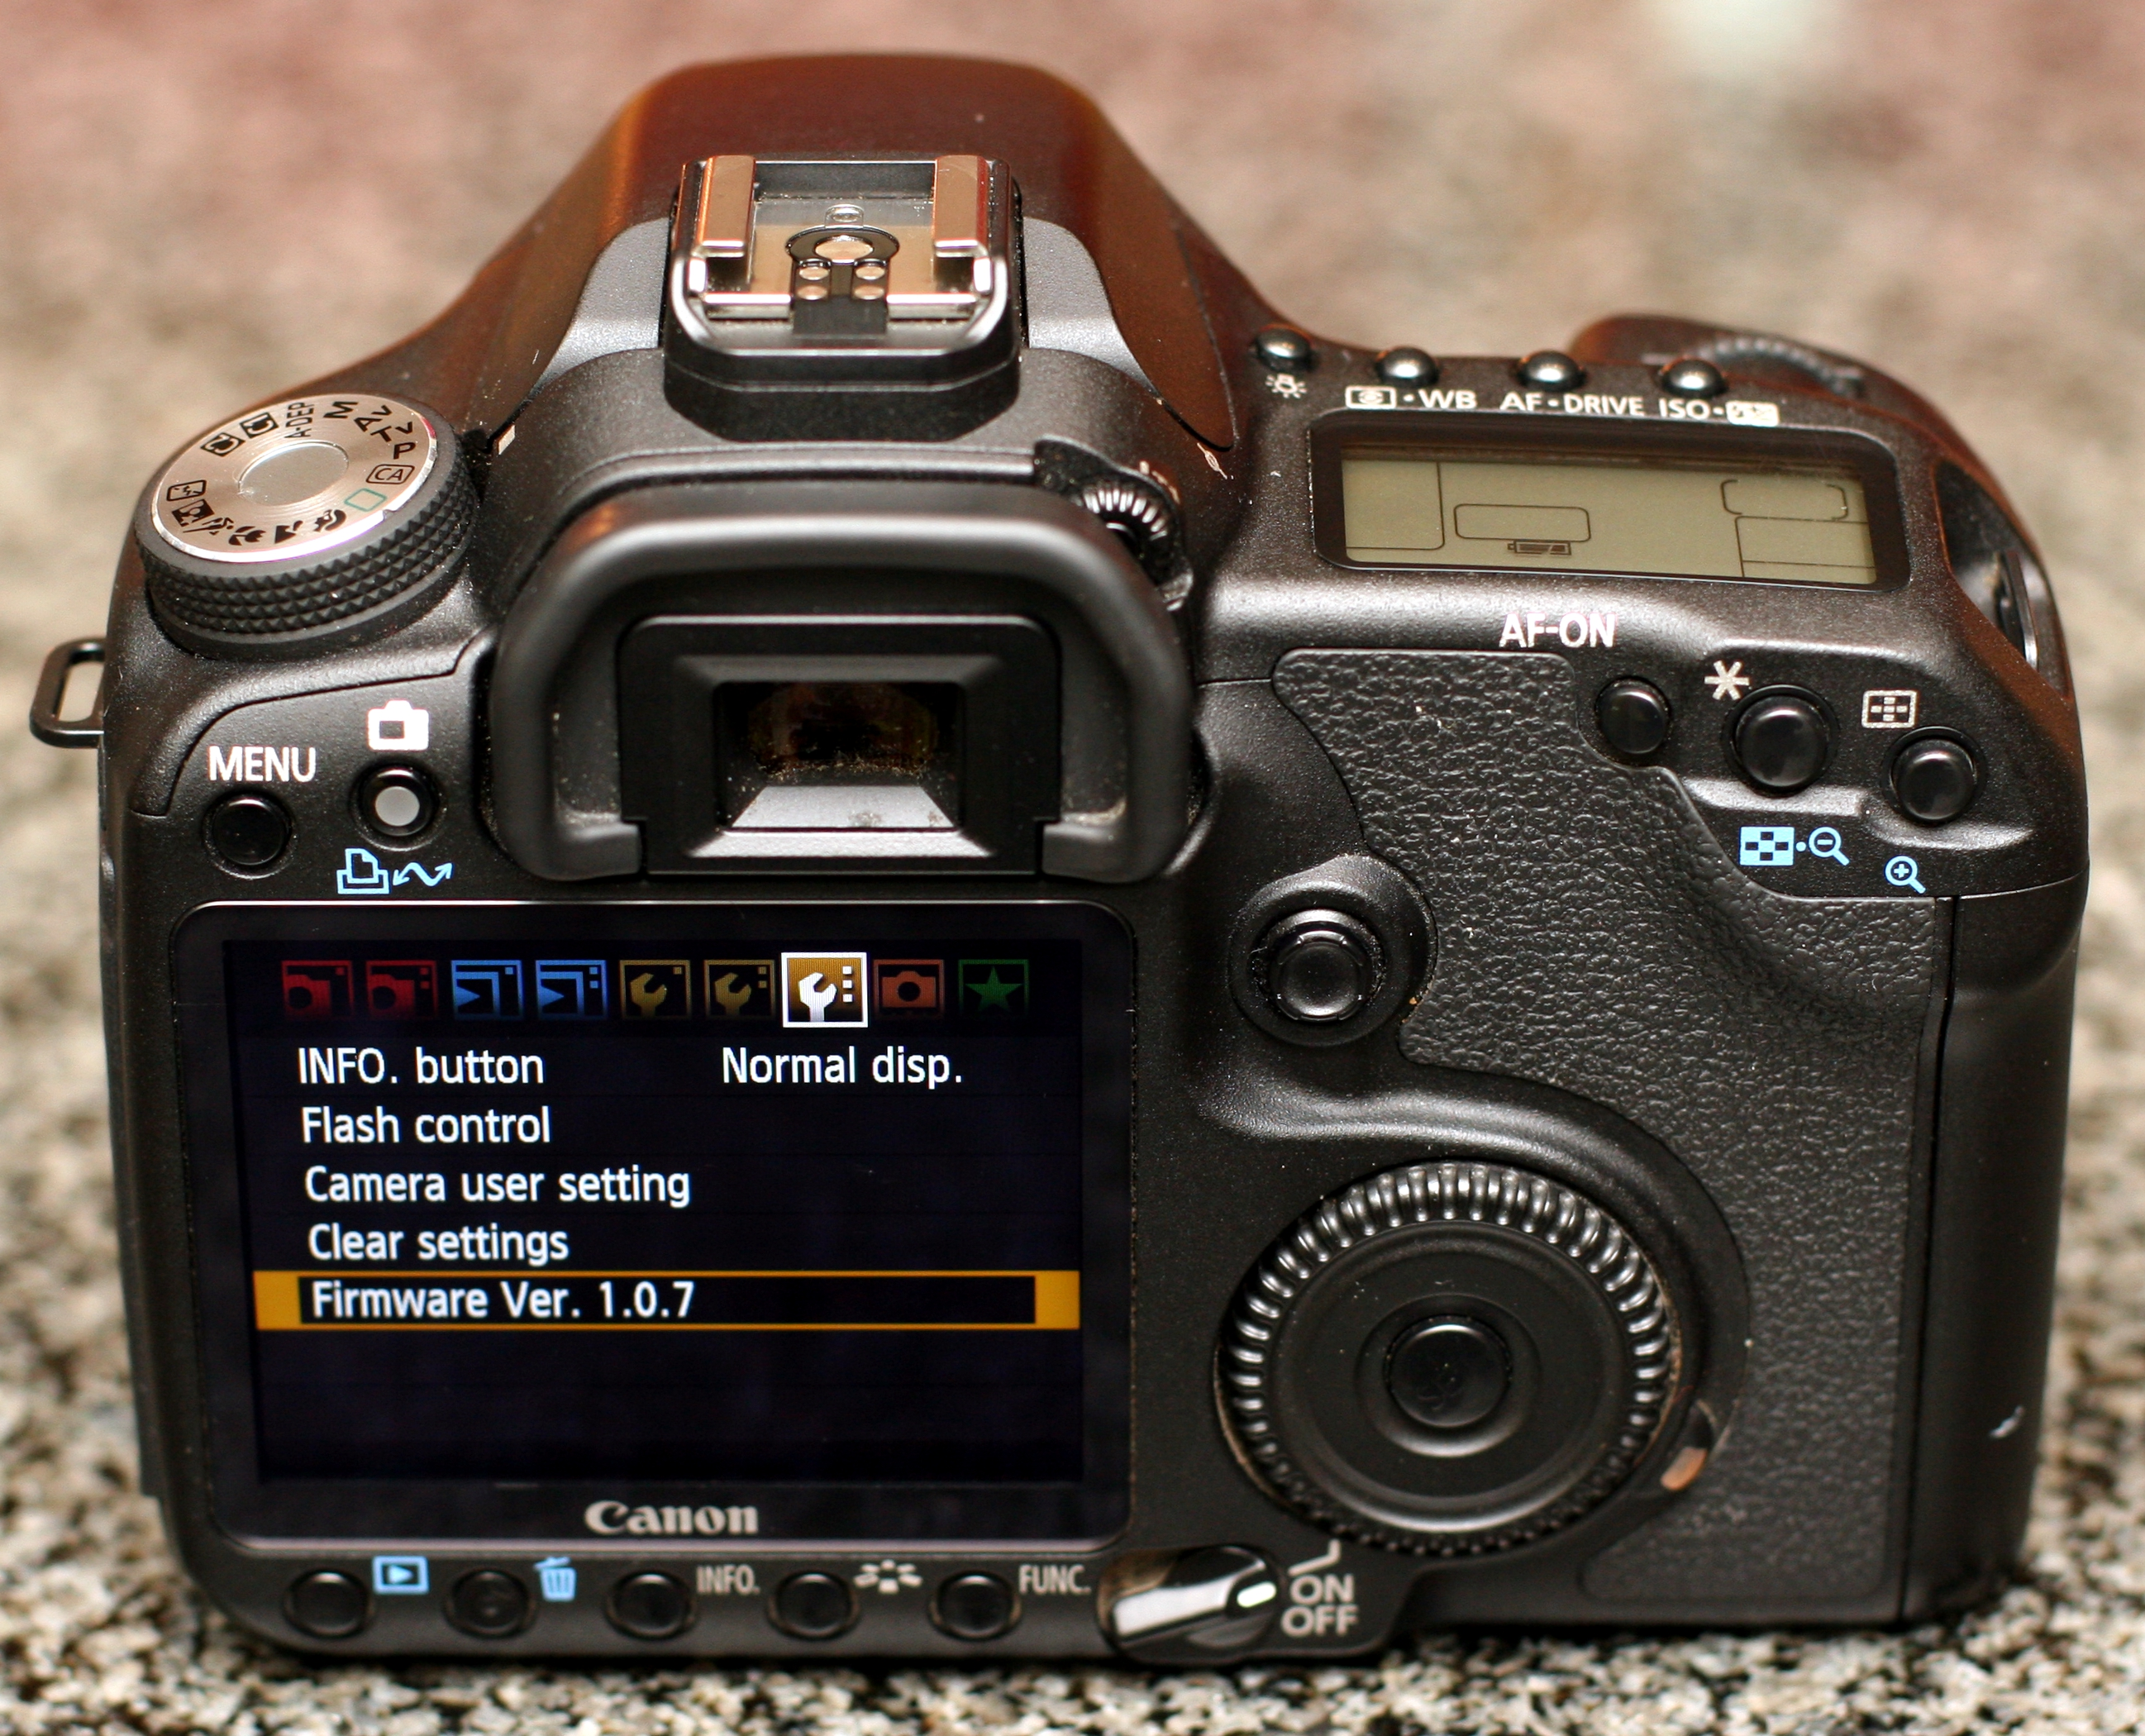 photo: rear view canon eos 50d dslr body for sale - by